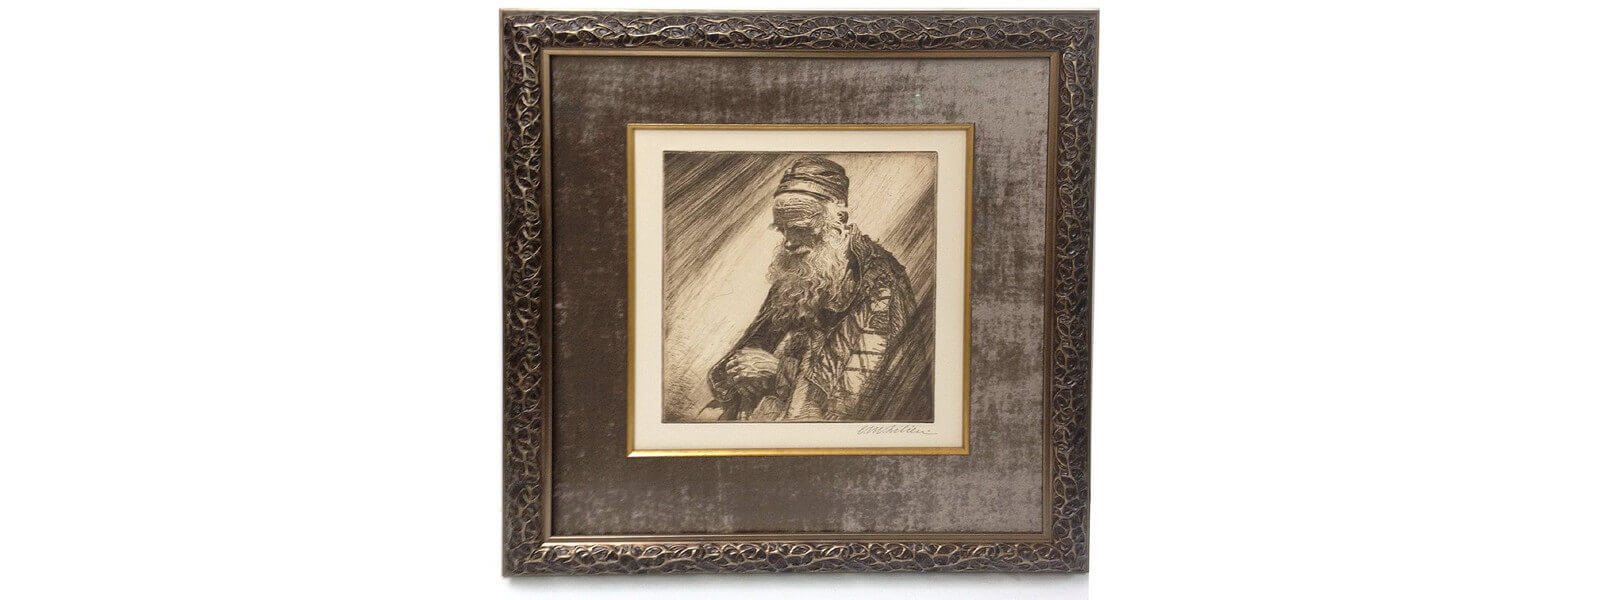 HS-old-jewish-etching-framed-picture